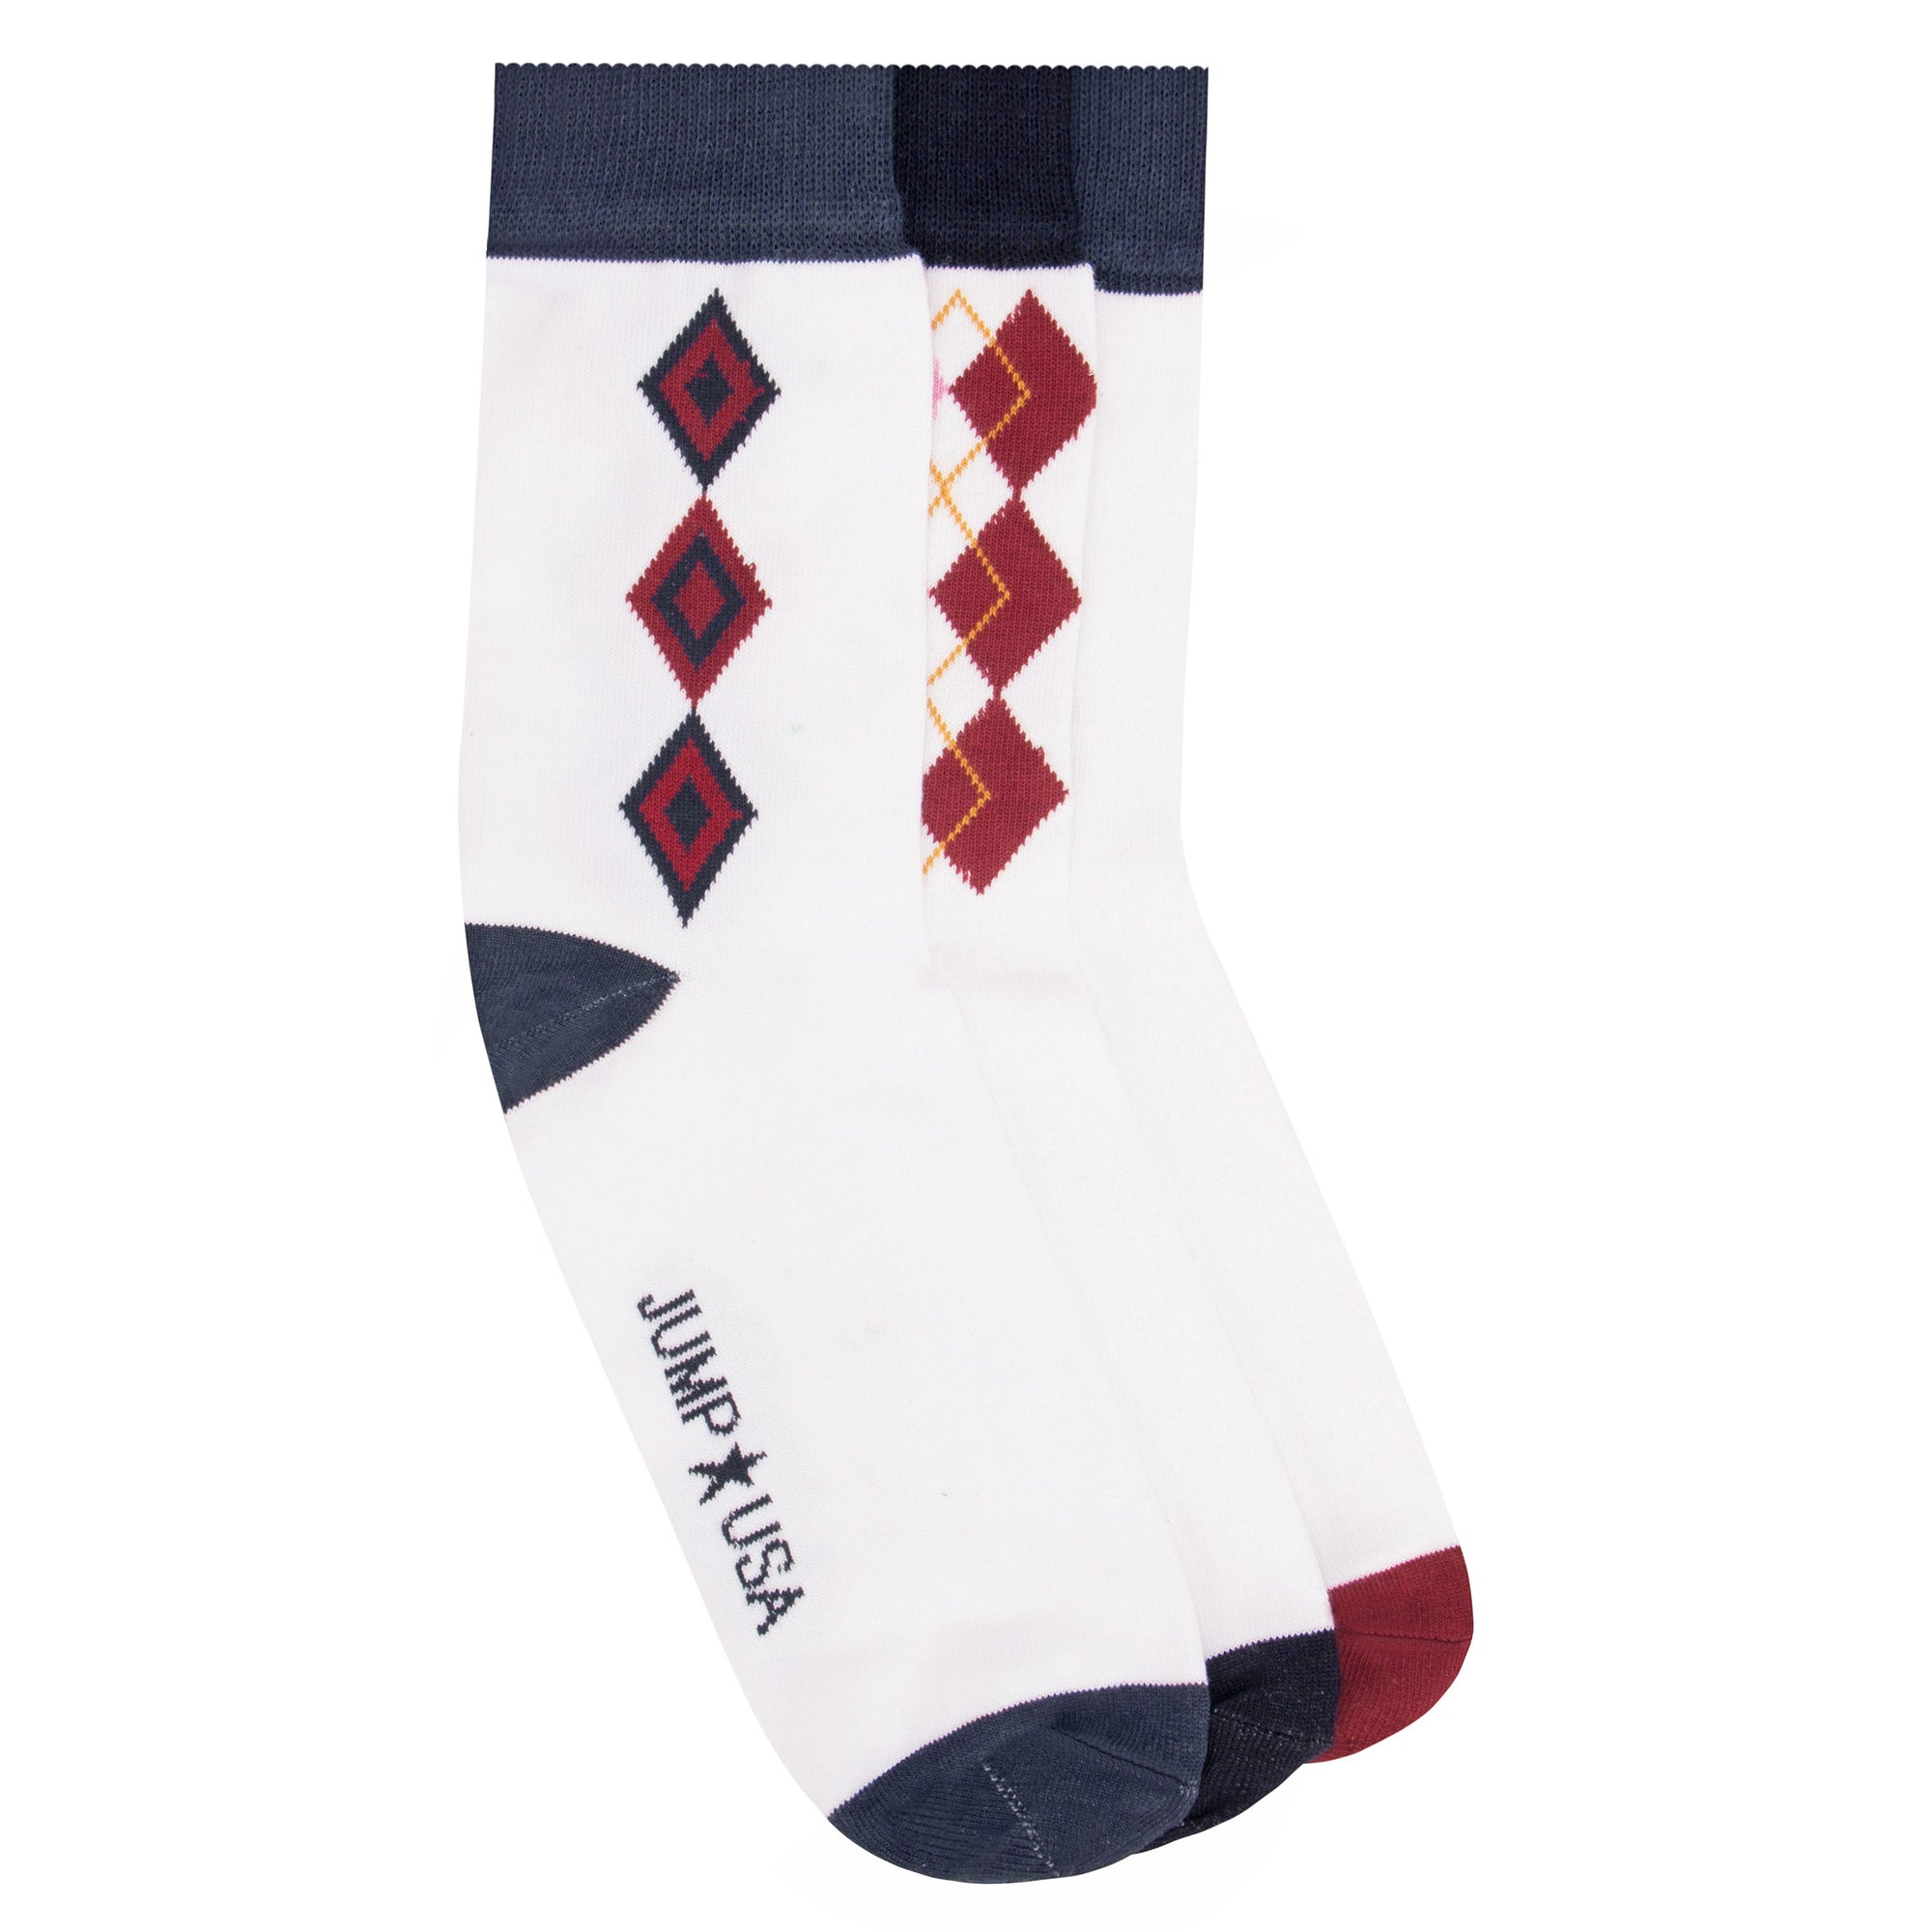 Cotton 3 Pack Socks Mens - JUMP USA - Breeches.com